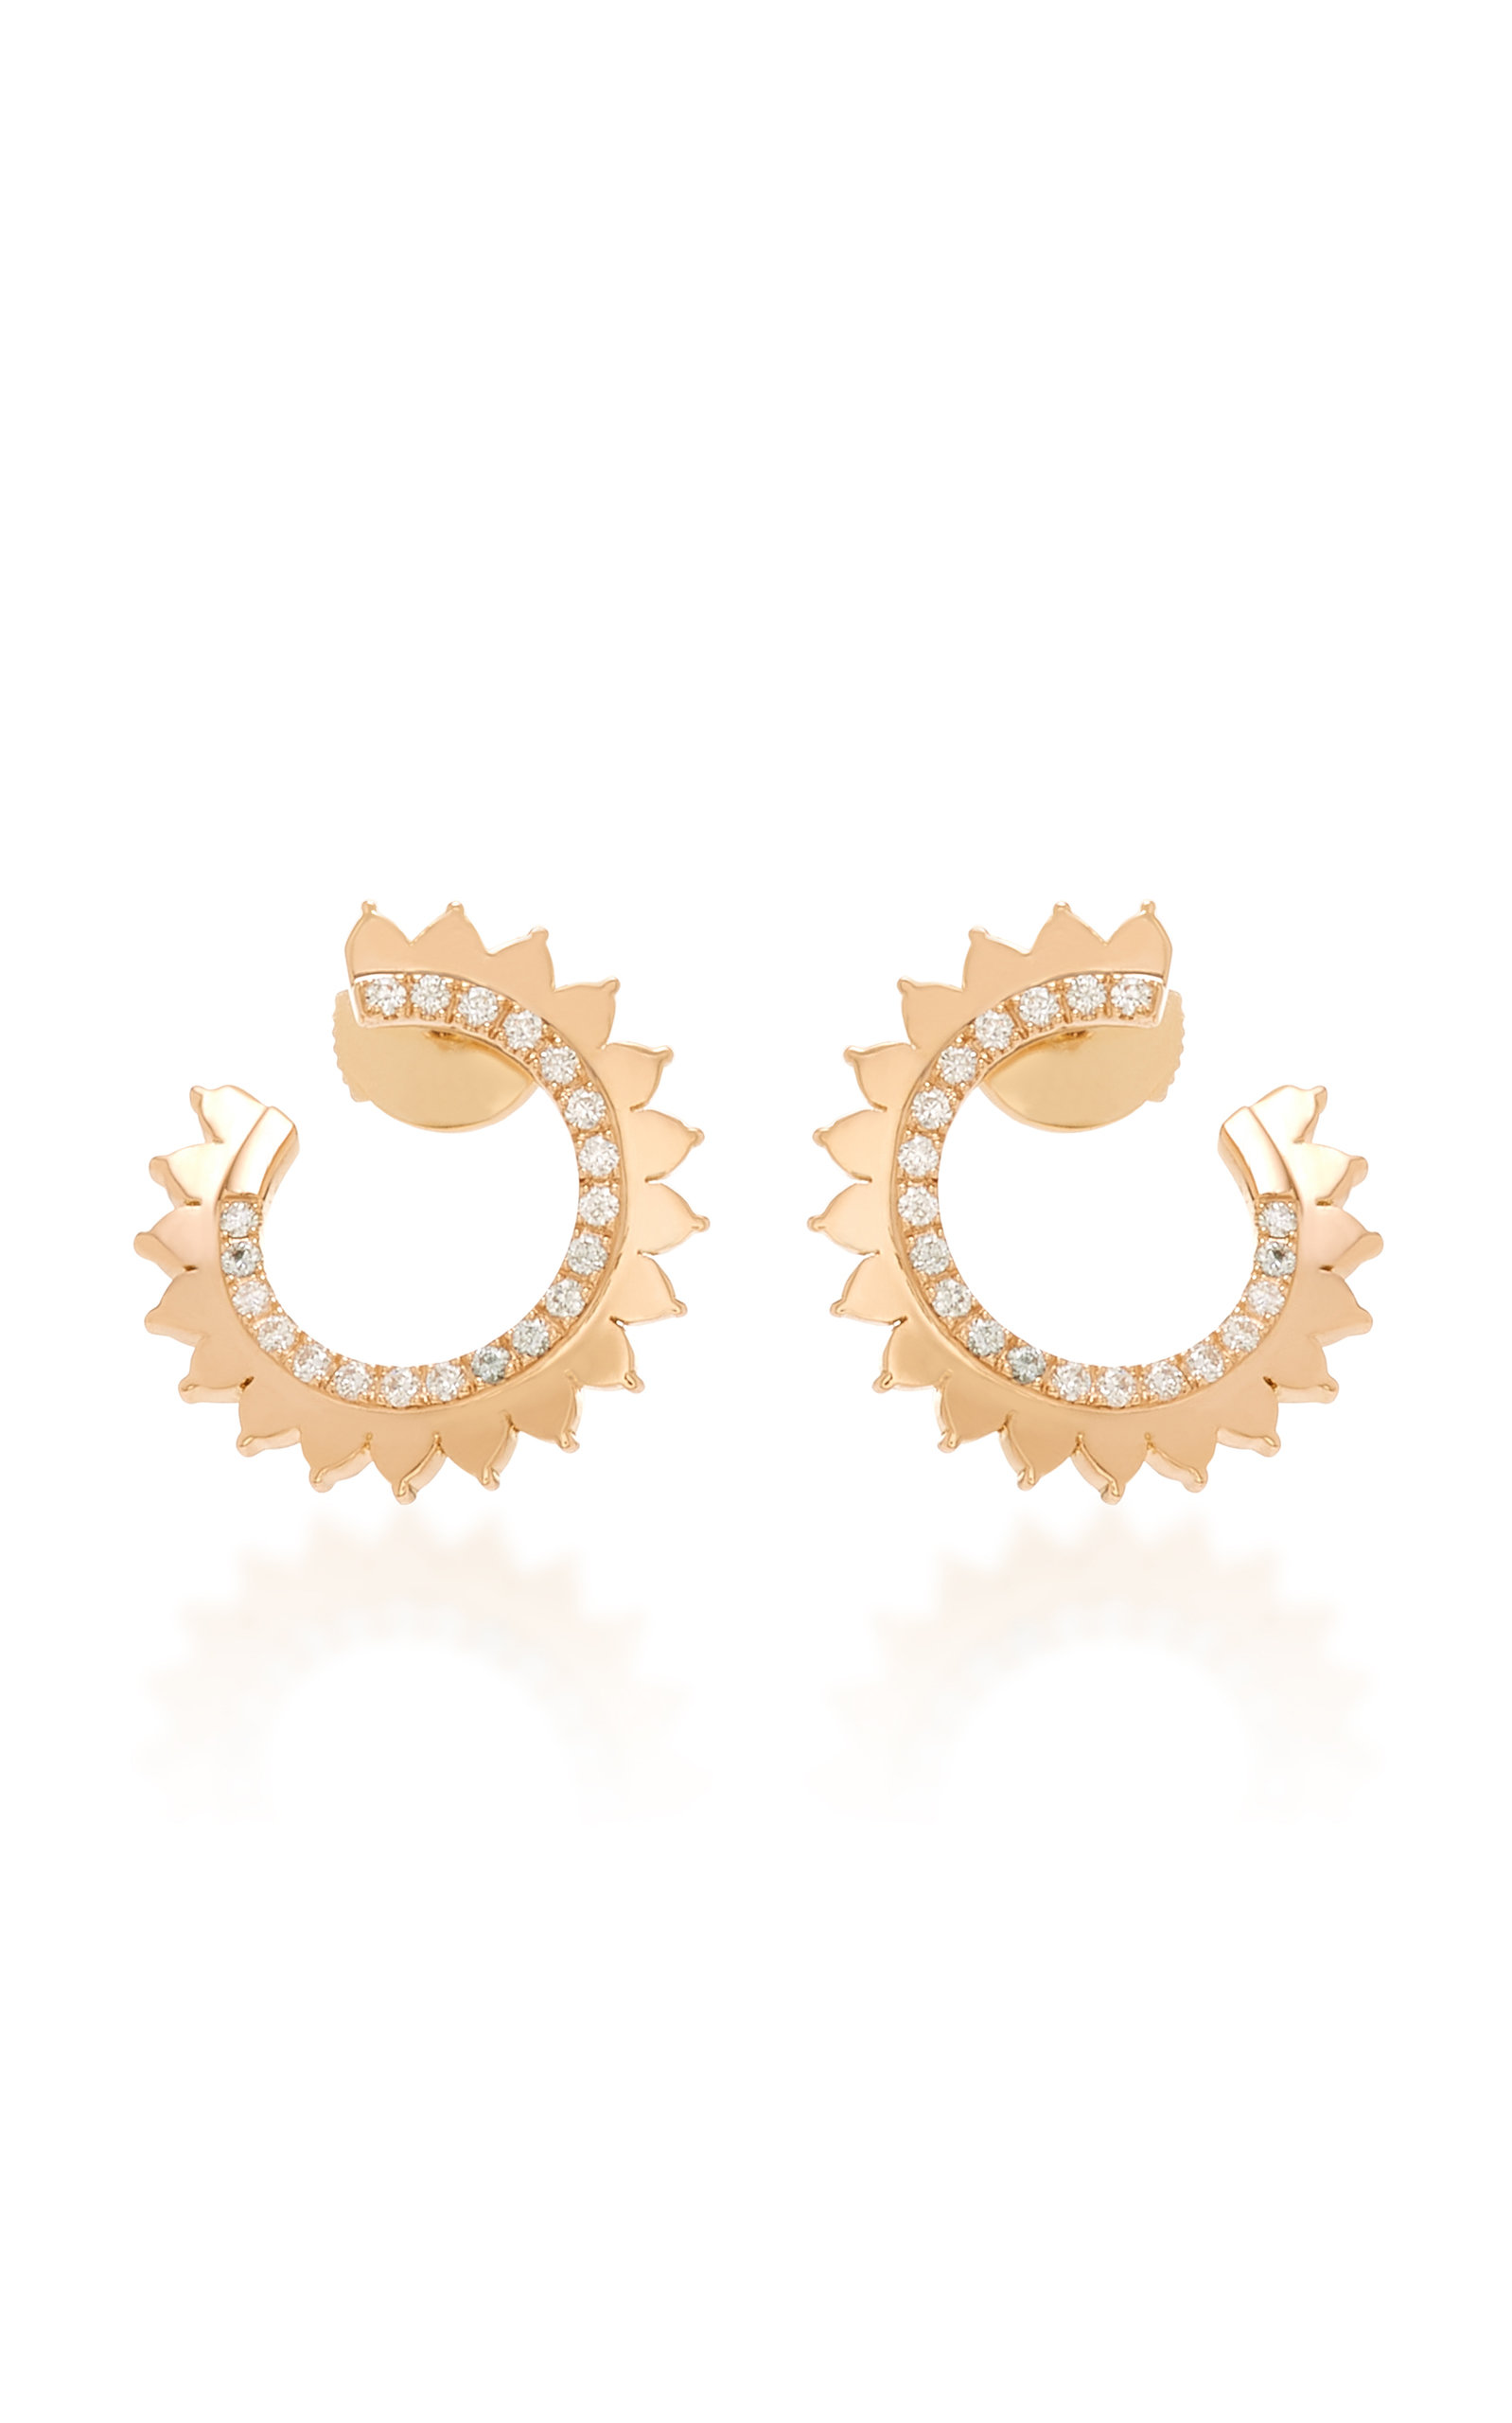 VENDOME 18K ROSE GOLD DIAMOND EARRINGS